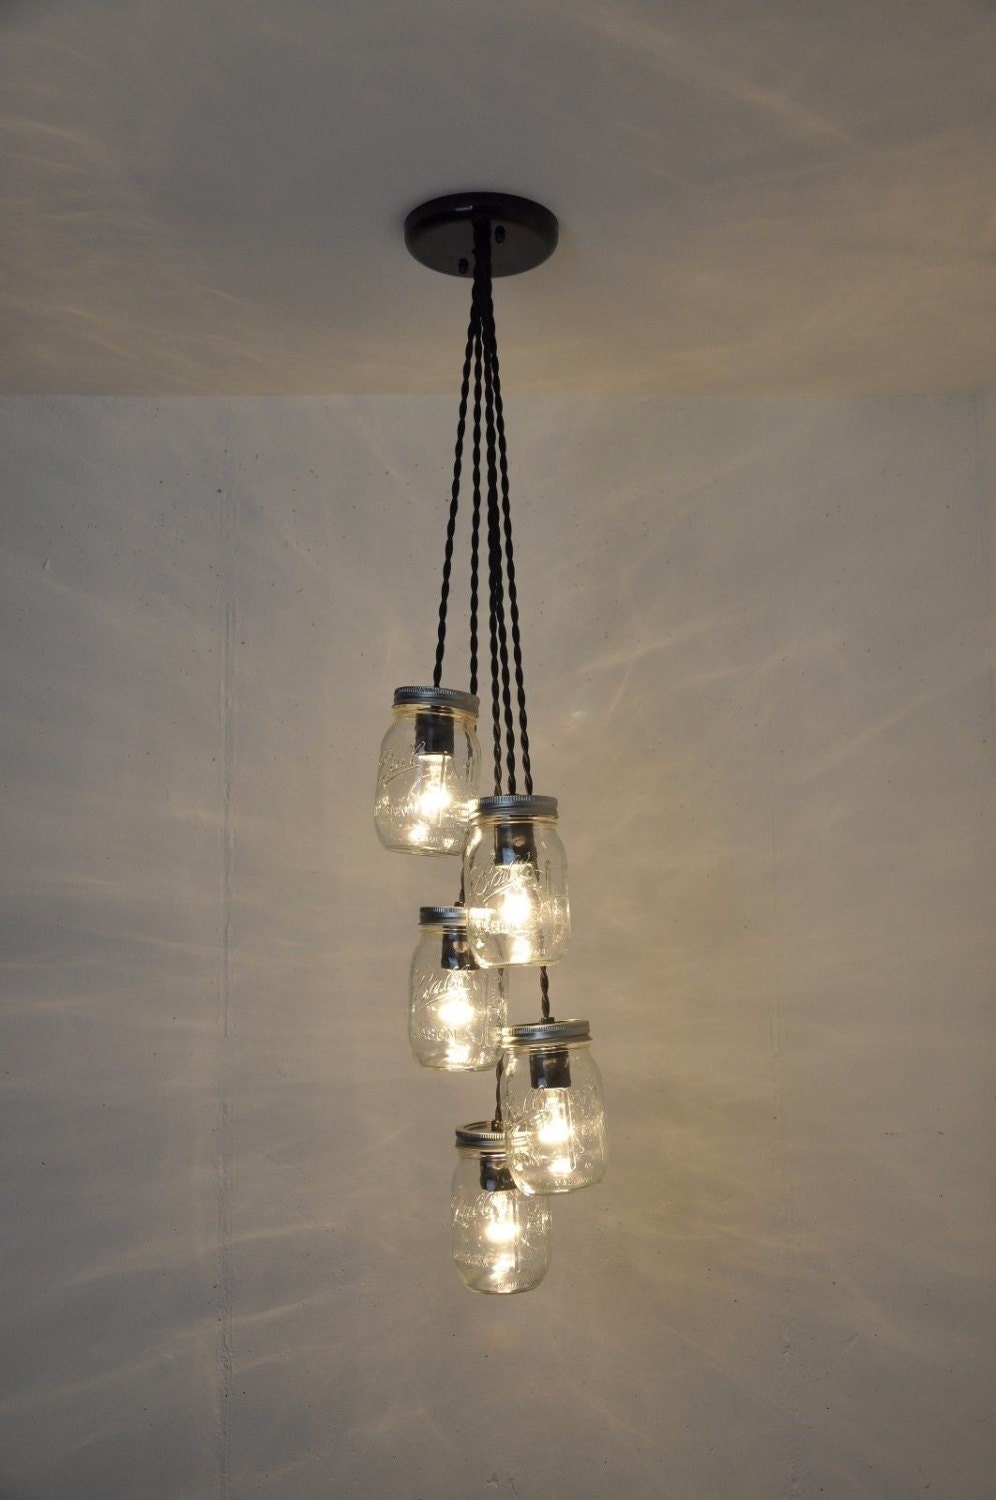 Mason jar chandelier mason jar light fixture ball jar ceiling mason jar chandelier mason jar light fixture ball jar ceiling light mason jar pendant light plug in pendant light hanging fixture aloadofball Image collections